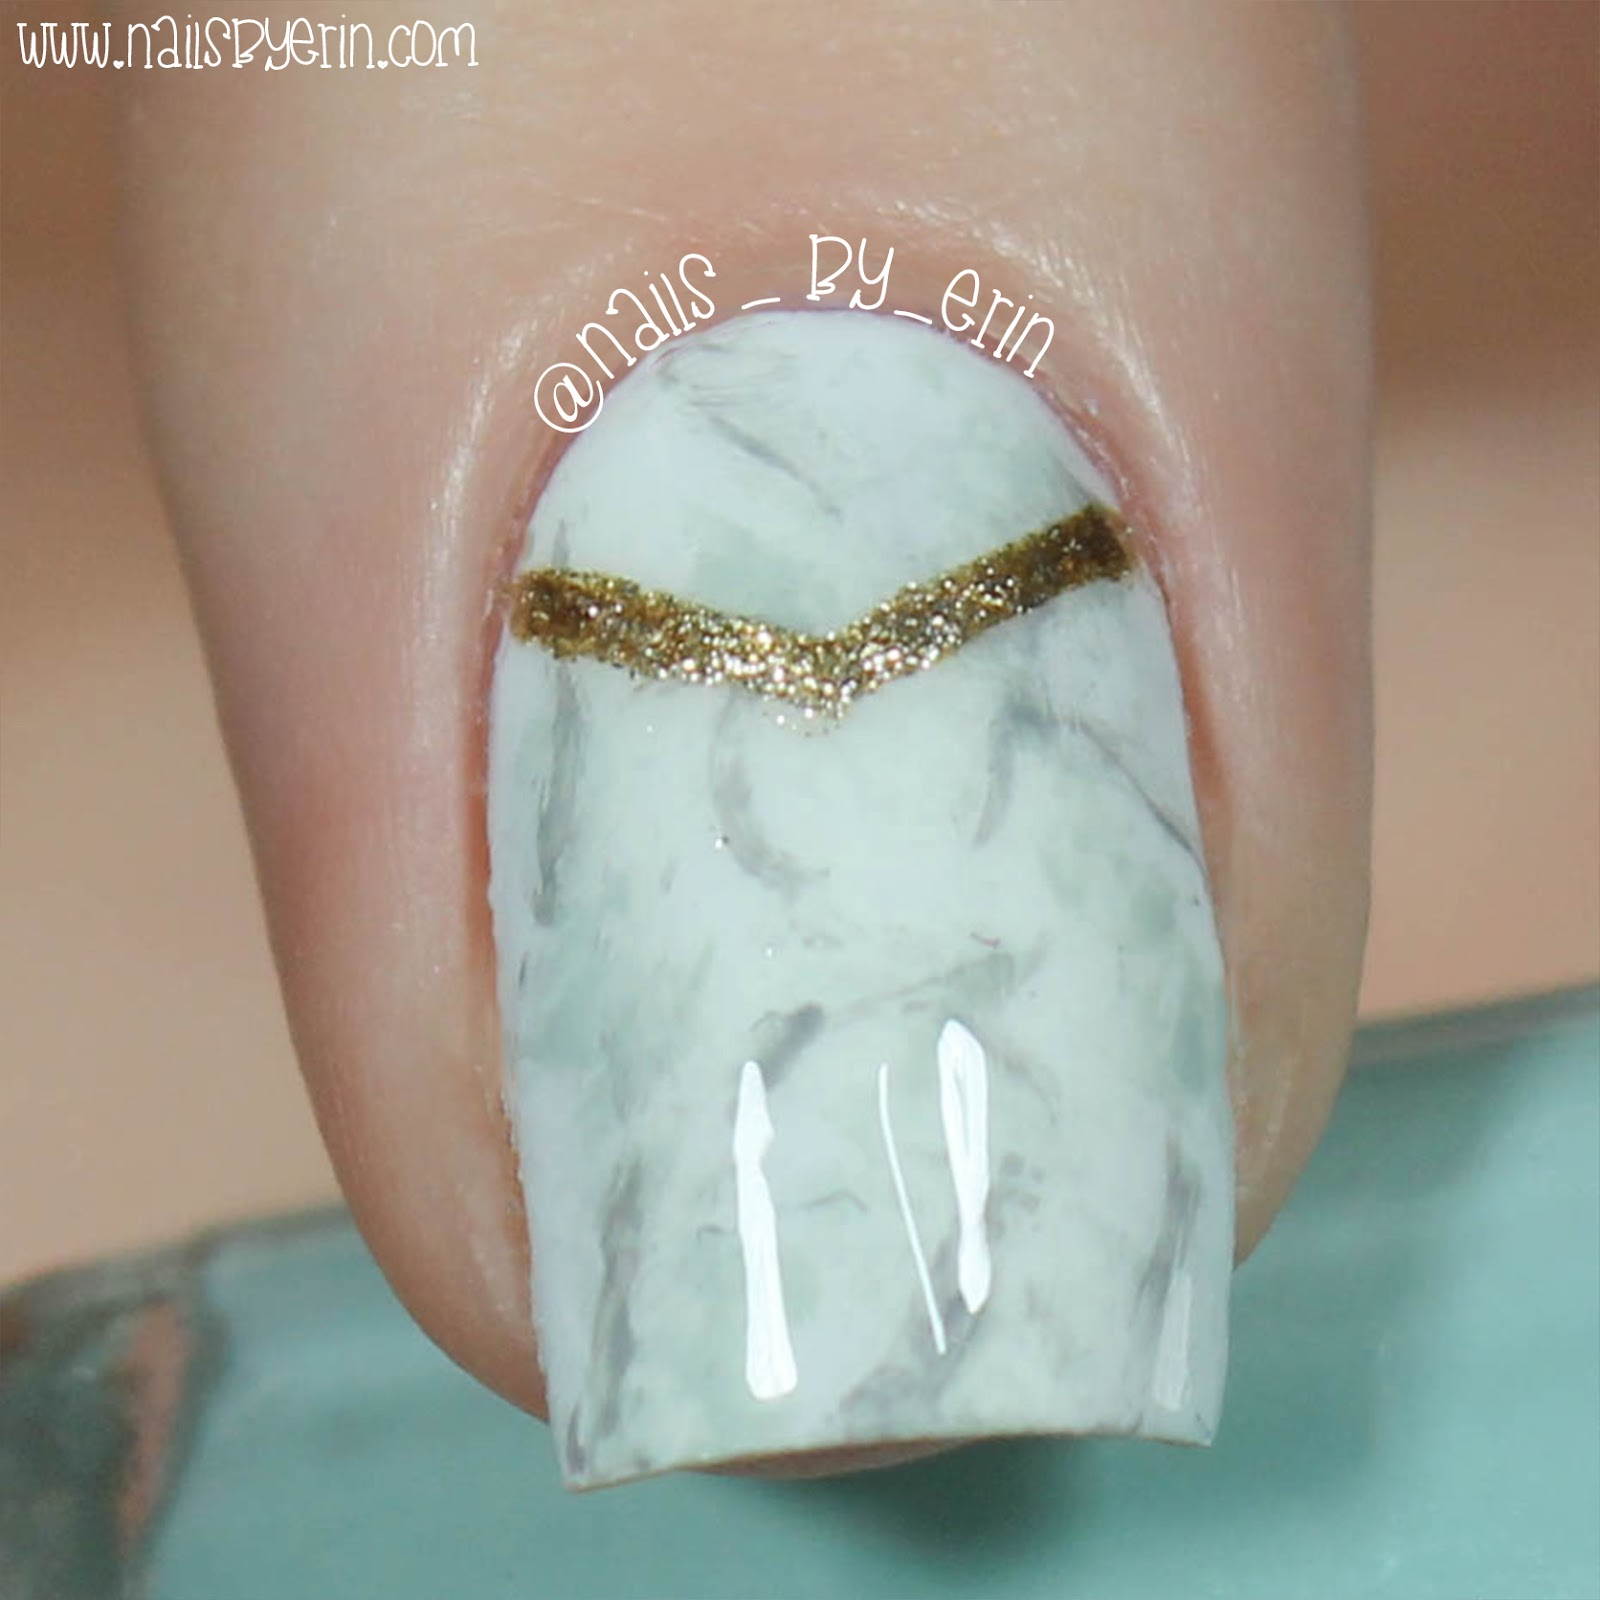 Nail Polish Marble Effect On Glass: NailsByErin: Marble Effect Nails